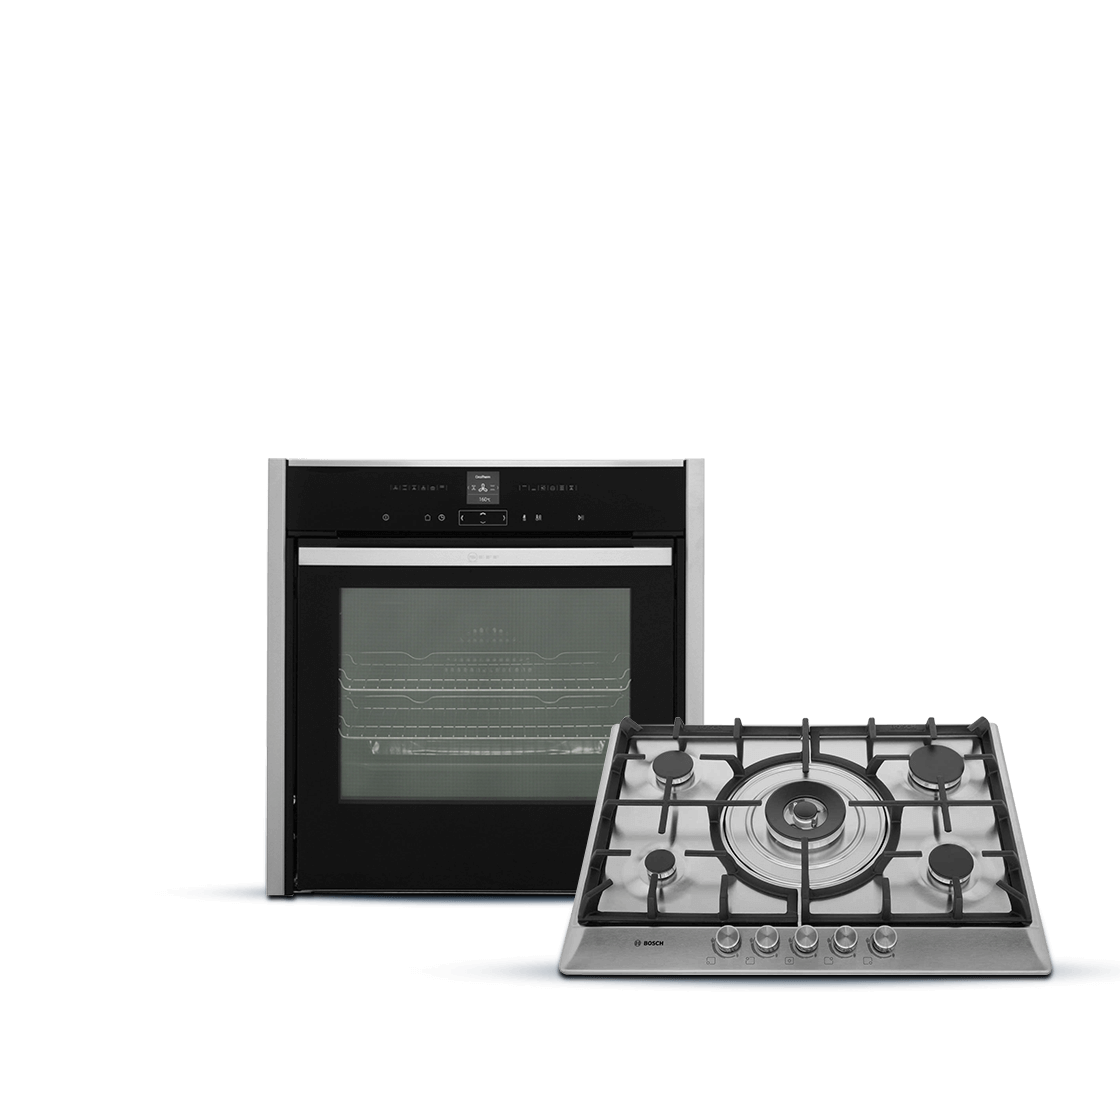 built-in ovens and hobs